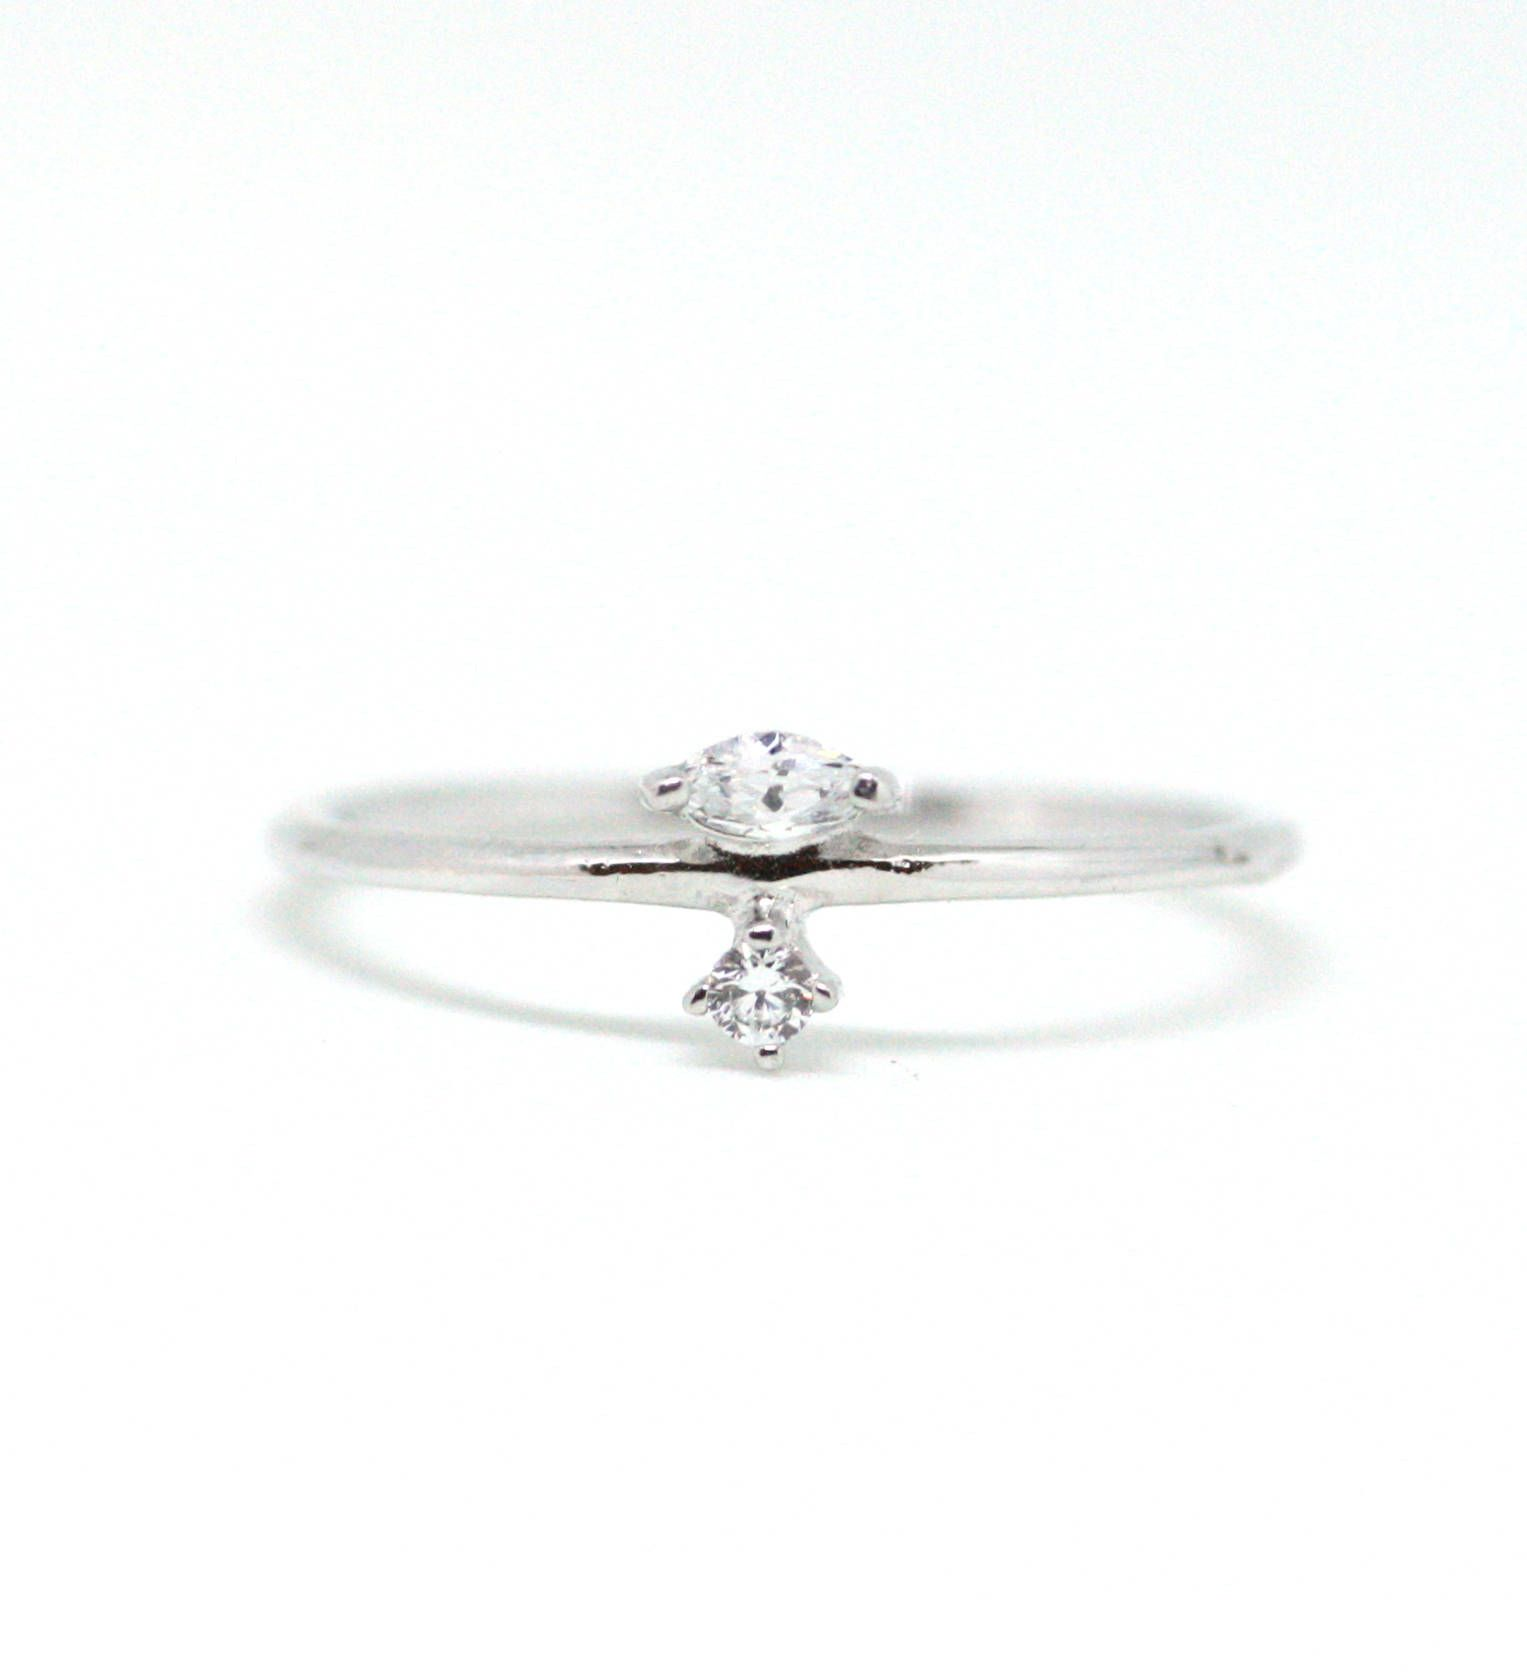 silver rings affordable wedding simple nexus size for diamond gold full engagement women of